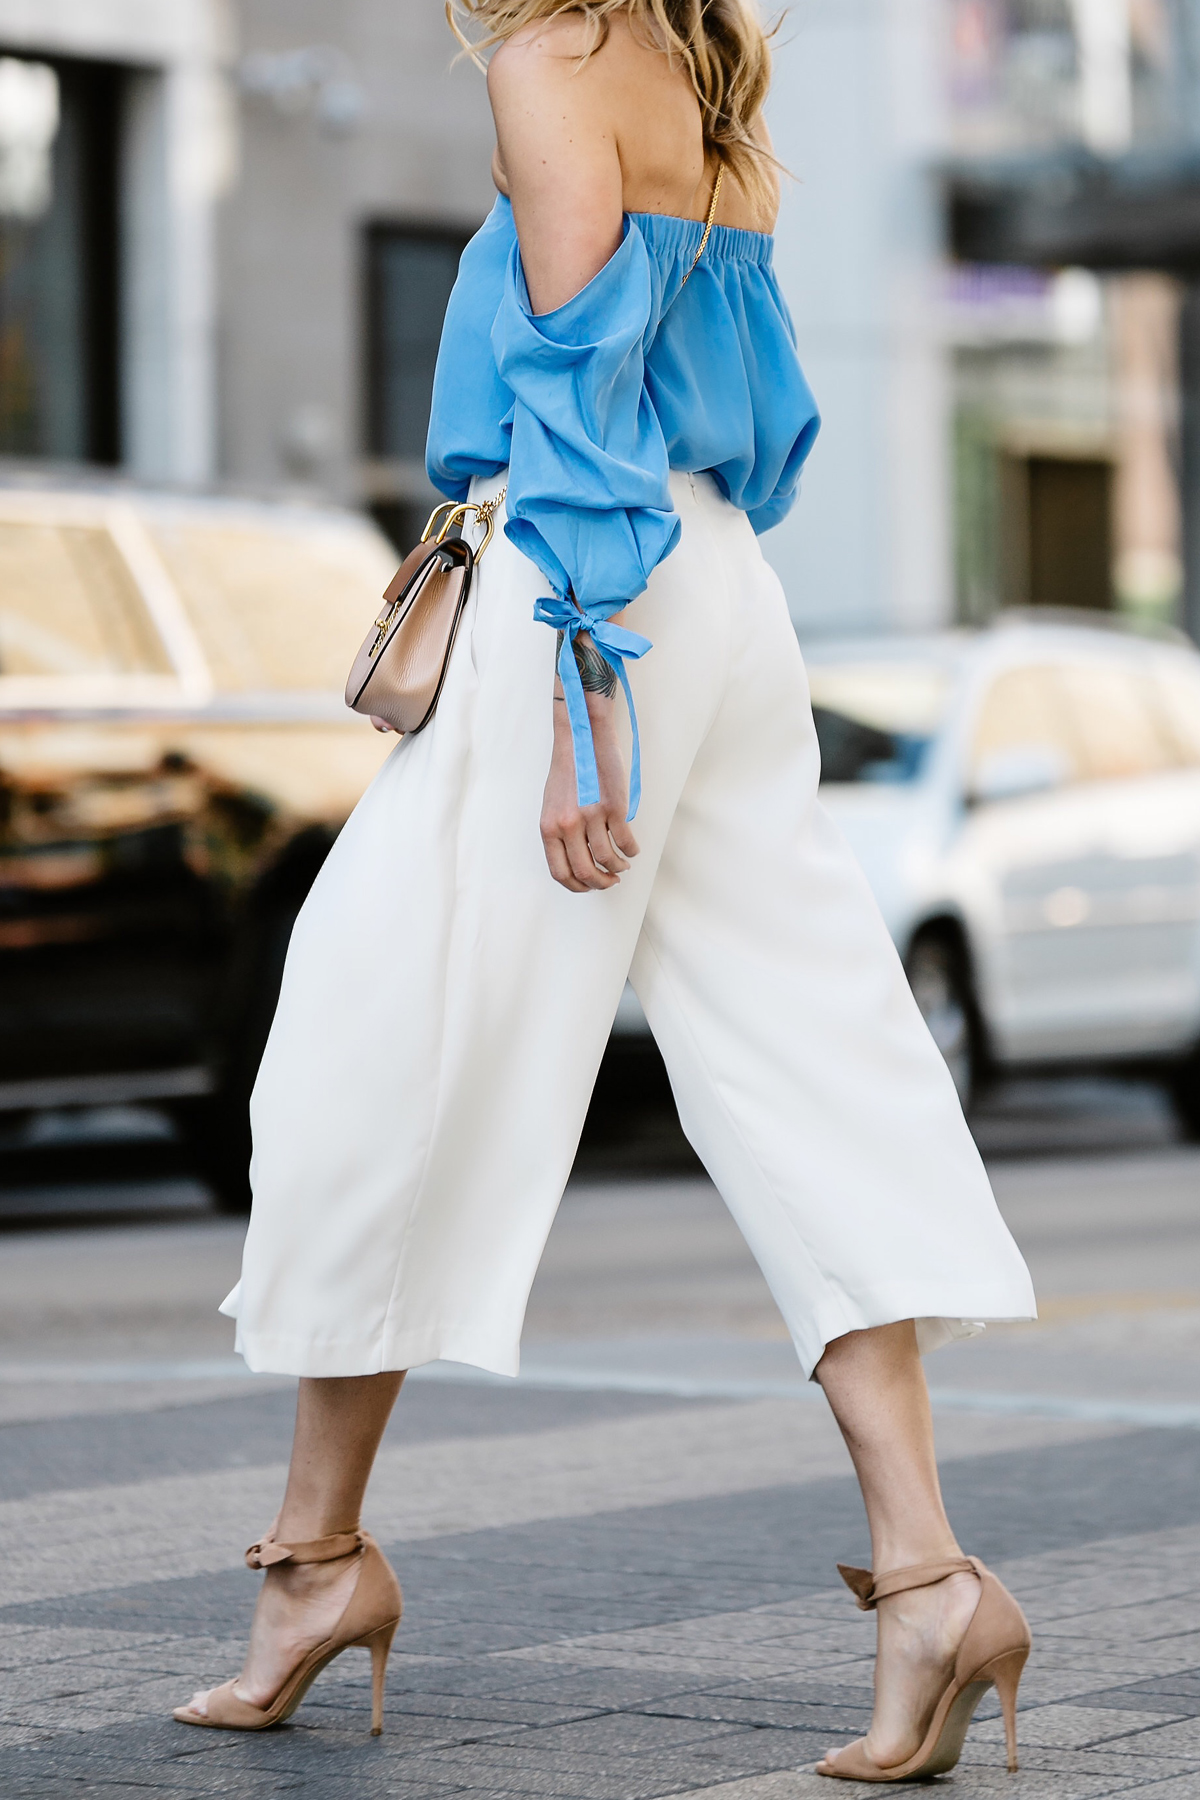 Fashion Jackson, Dallas Blogger, Fashion Blogger, Street Style, Club Monaco Liki Top, Blue Off-the-Shoulder Top, White Culottes, Chloe Drew Handbag, Tan Ankle Strap Bow Heeled Sandals